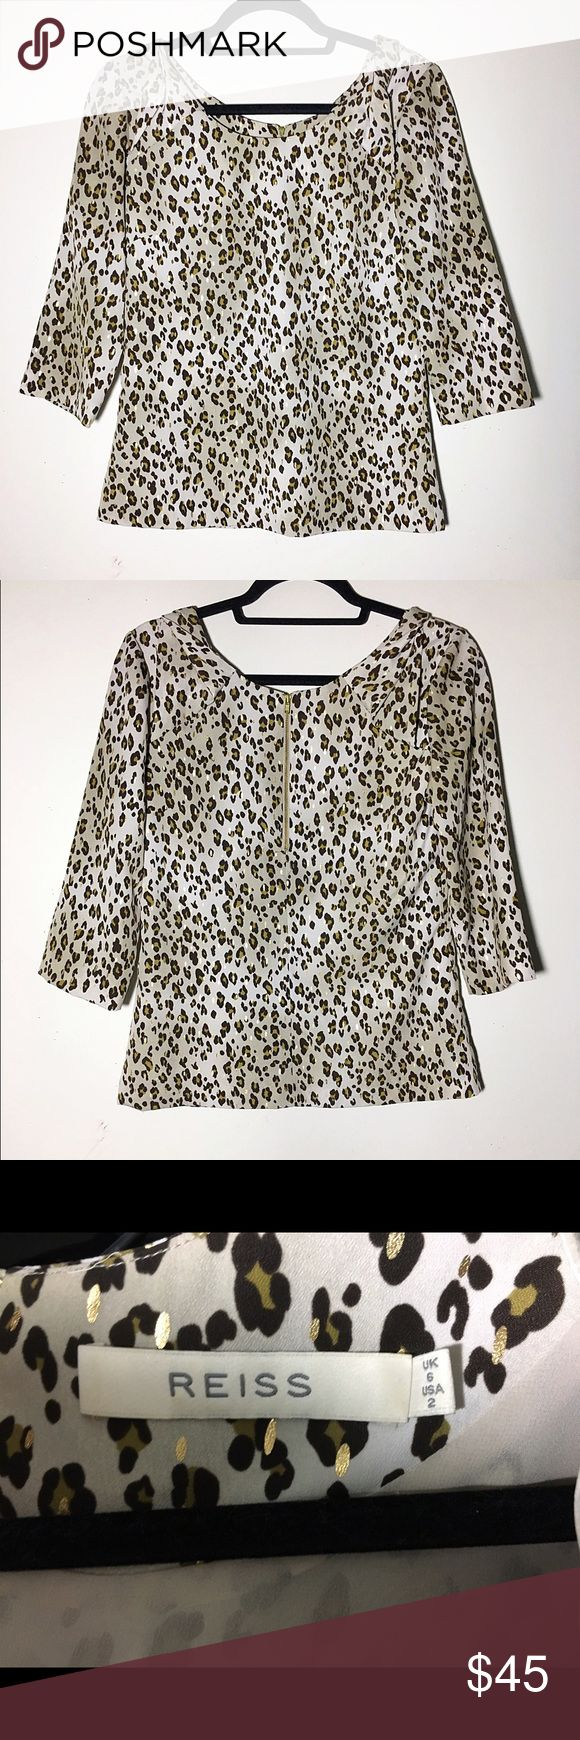 "Reiss metallic leopard 3/4 sleeve blouse 2 Pristine condition. Shoulders have a twisted detail to them. Rear zipper, completely lined. Approx 33"" bust, 23"" length. Shades of brown with metallic gold spots. ✅offers❌trades/PP 💰make an offer on bundles Reiss Tops Blouses"